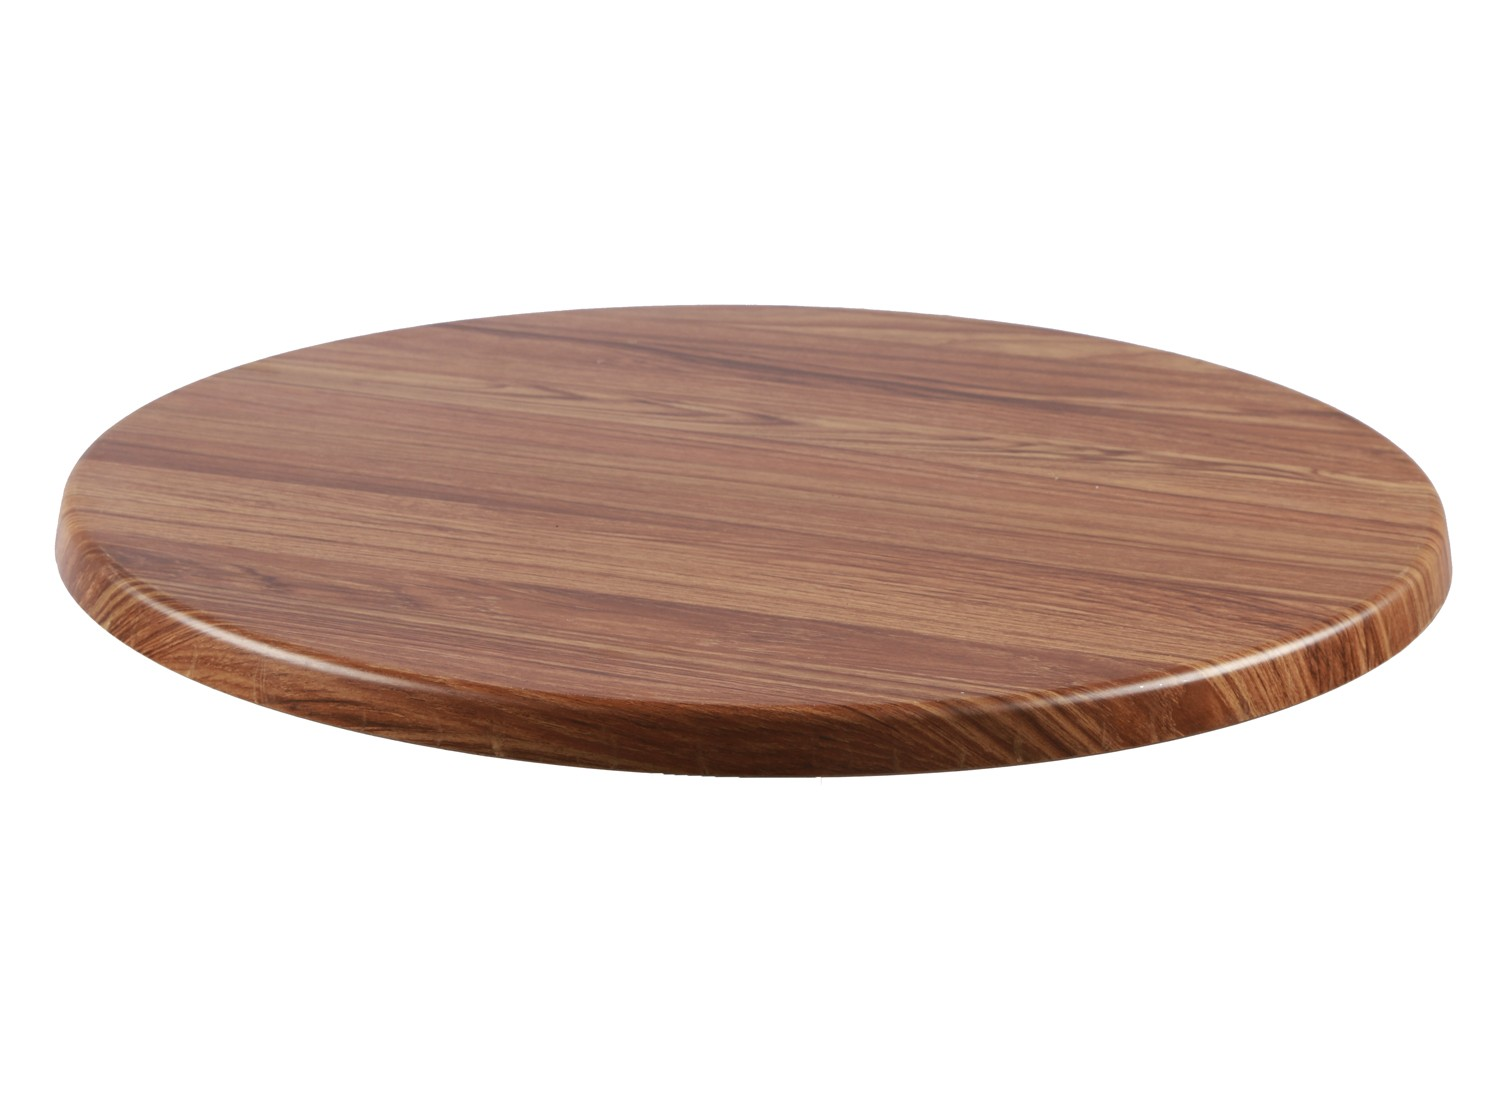 Round Teak Table Top Sesigncorp